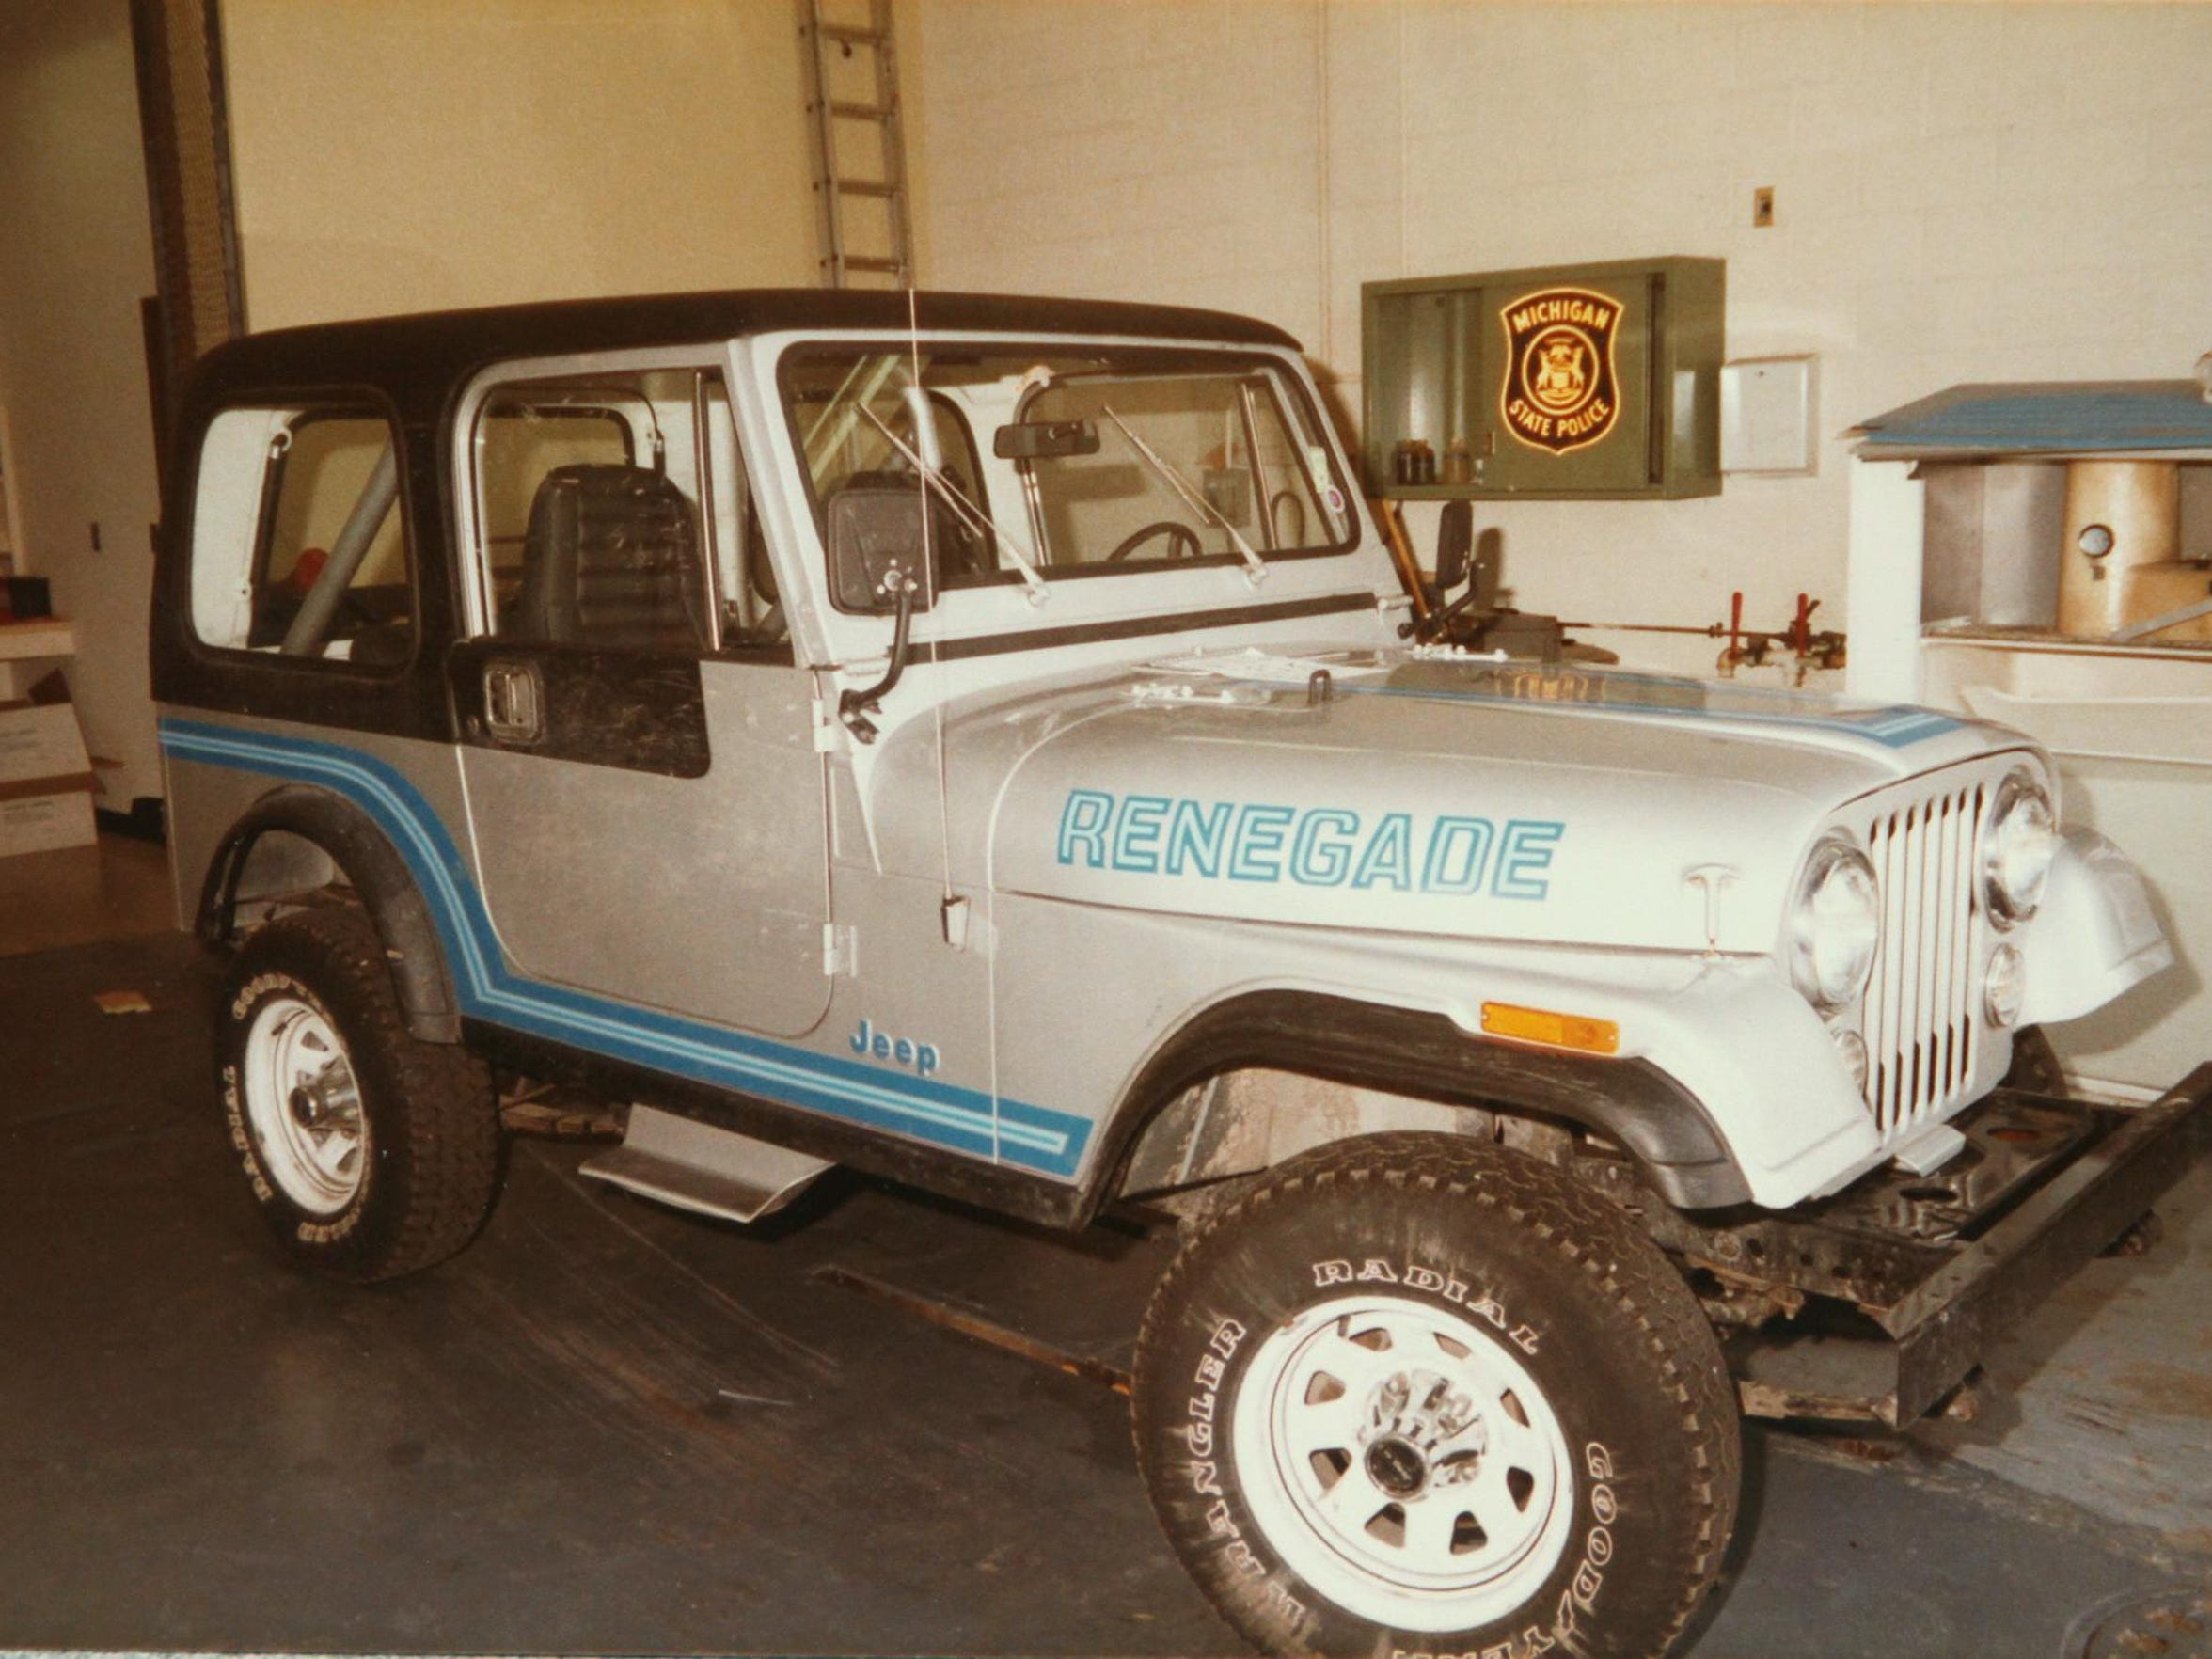 Pictured is Ronald Lloyd Bailey's Jeep Renegade that he used when he kidnapped 13-year-old Shawn Moore as he rode his bicycle home from a store near his Green Oak Township home Aug. 31, 1985.